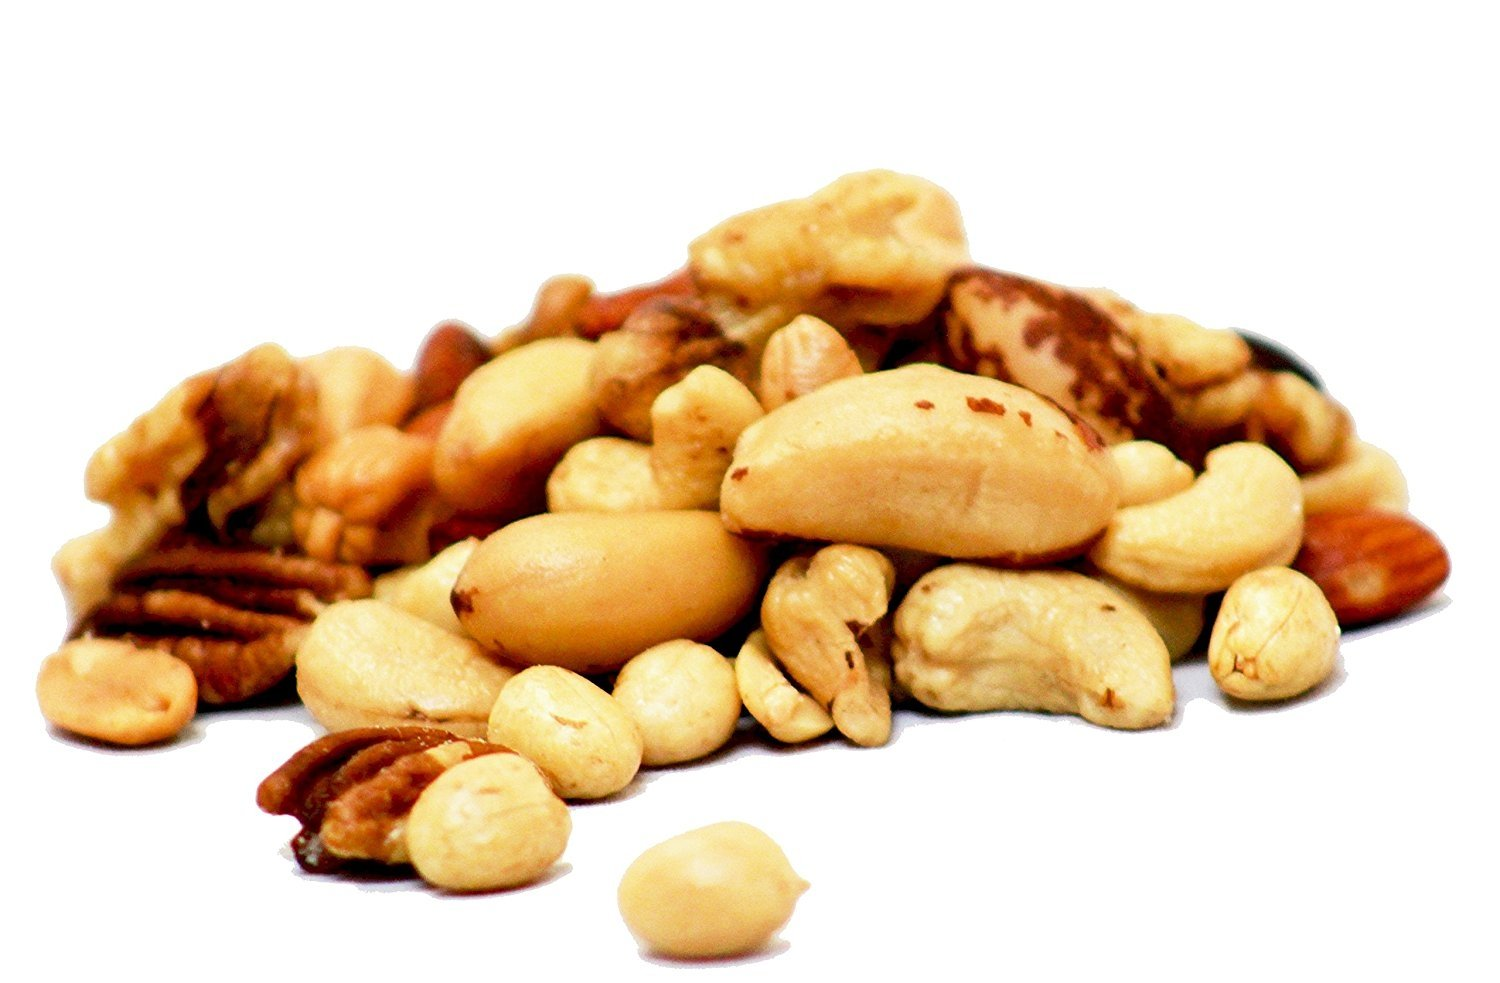 ROASTED MIXED NUTS (UNSALTED)